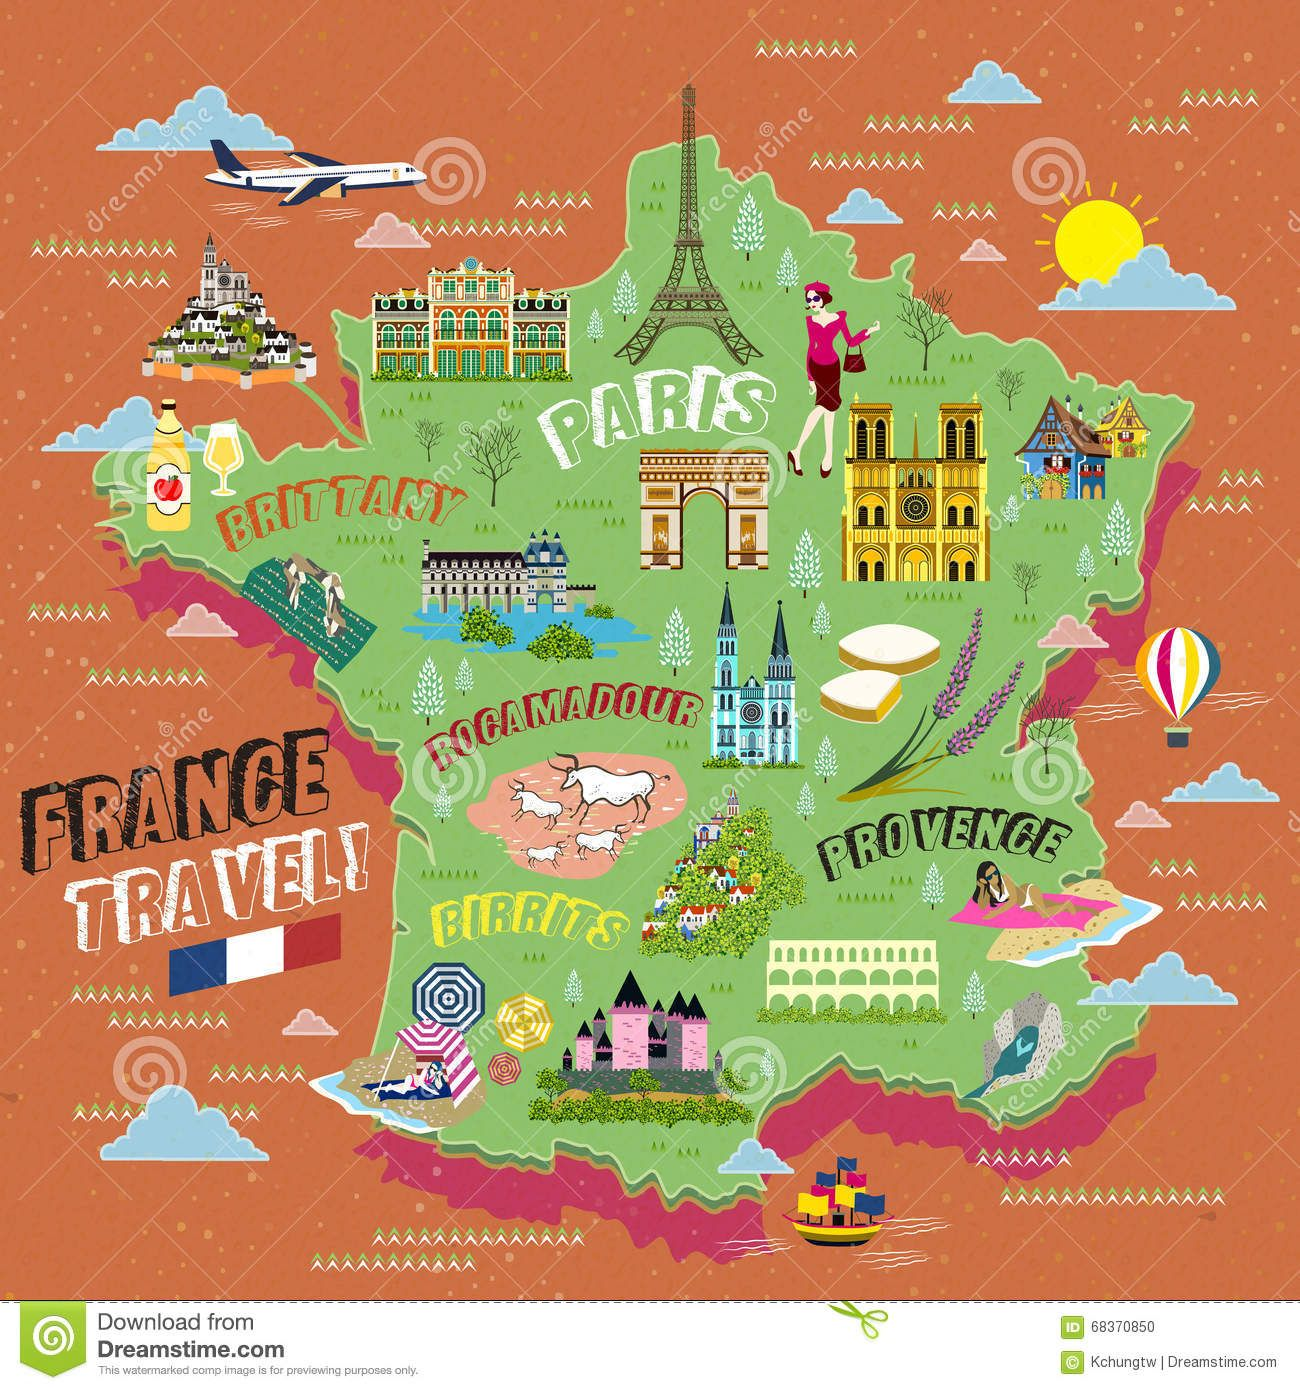 Map Of France Tourist Attractions.Maps Update France Tourist Attractions Map France Map Tourist